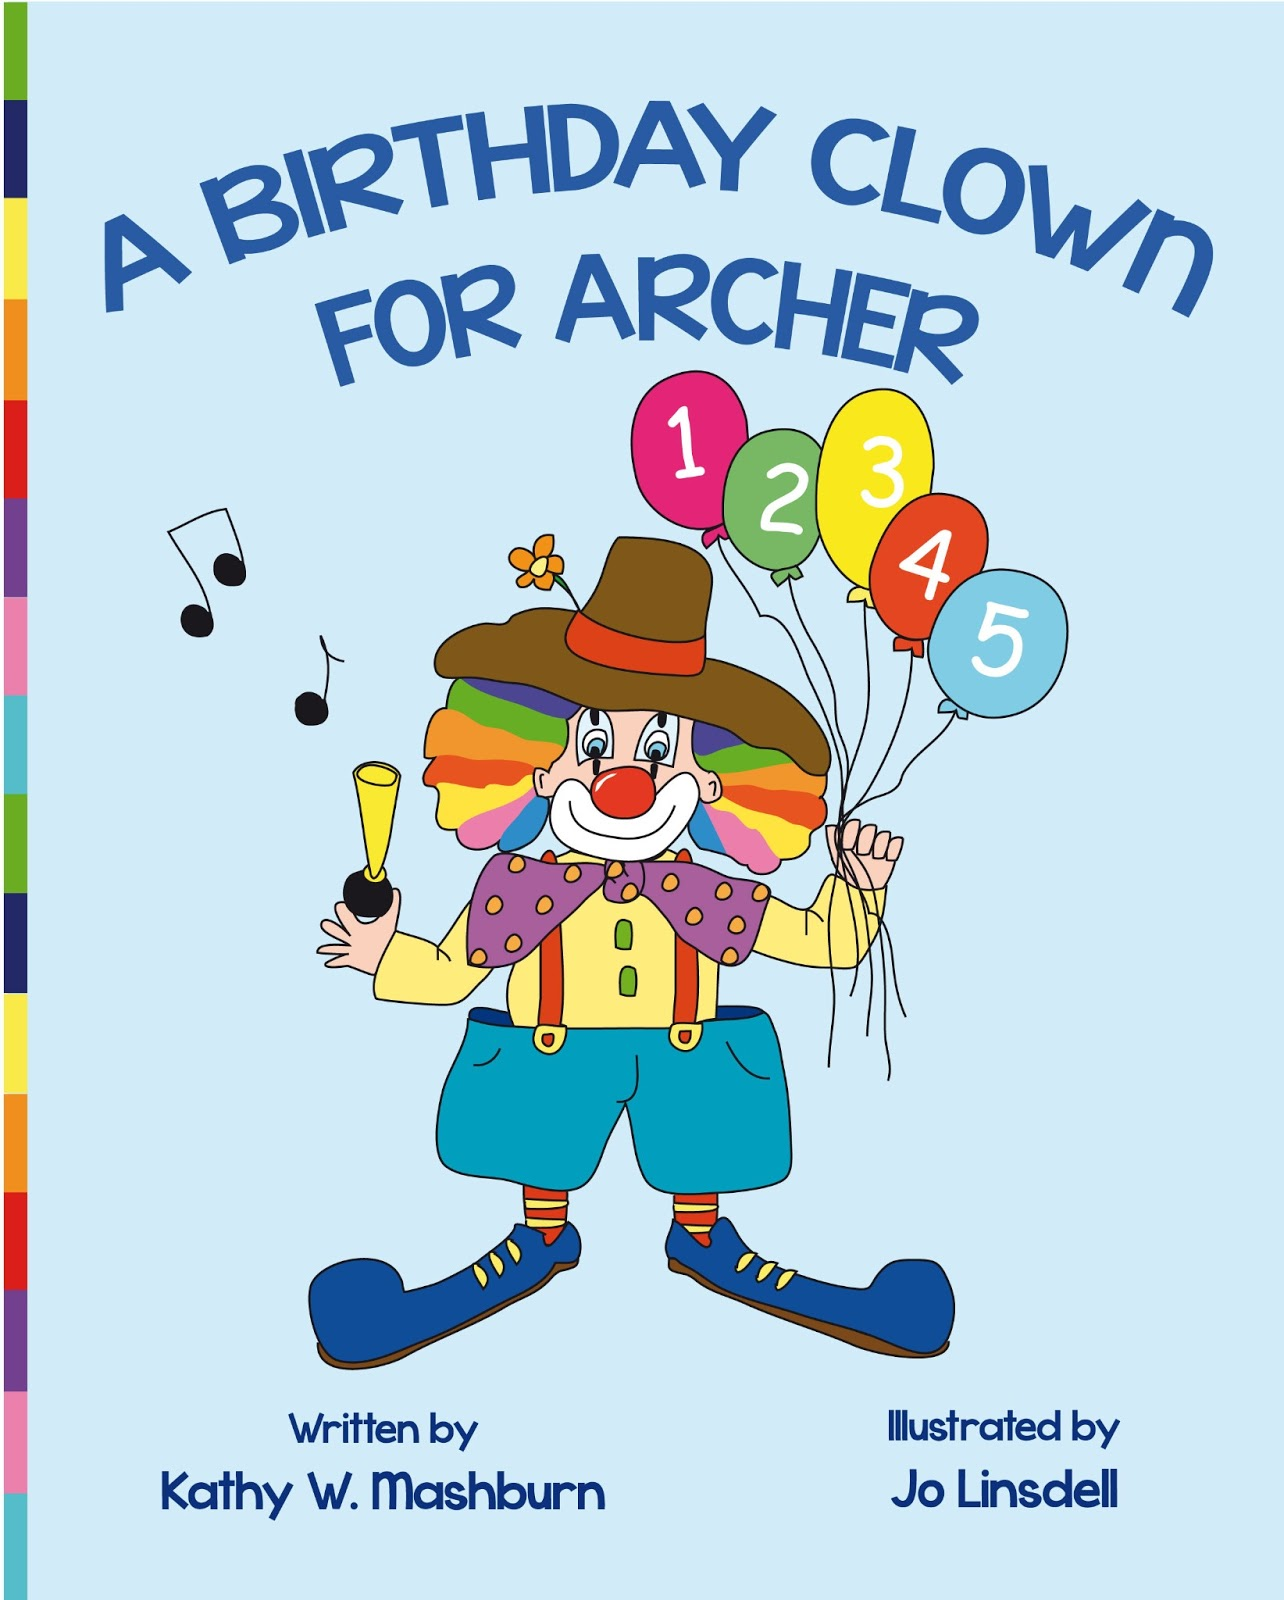 A Birthday Clown For Archer written by Kathy Mashburn illustrated by Jo Linsdell